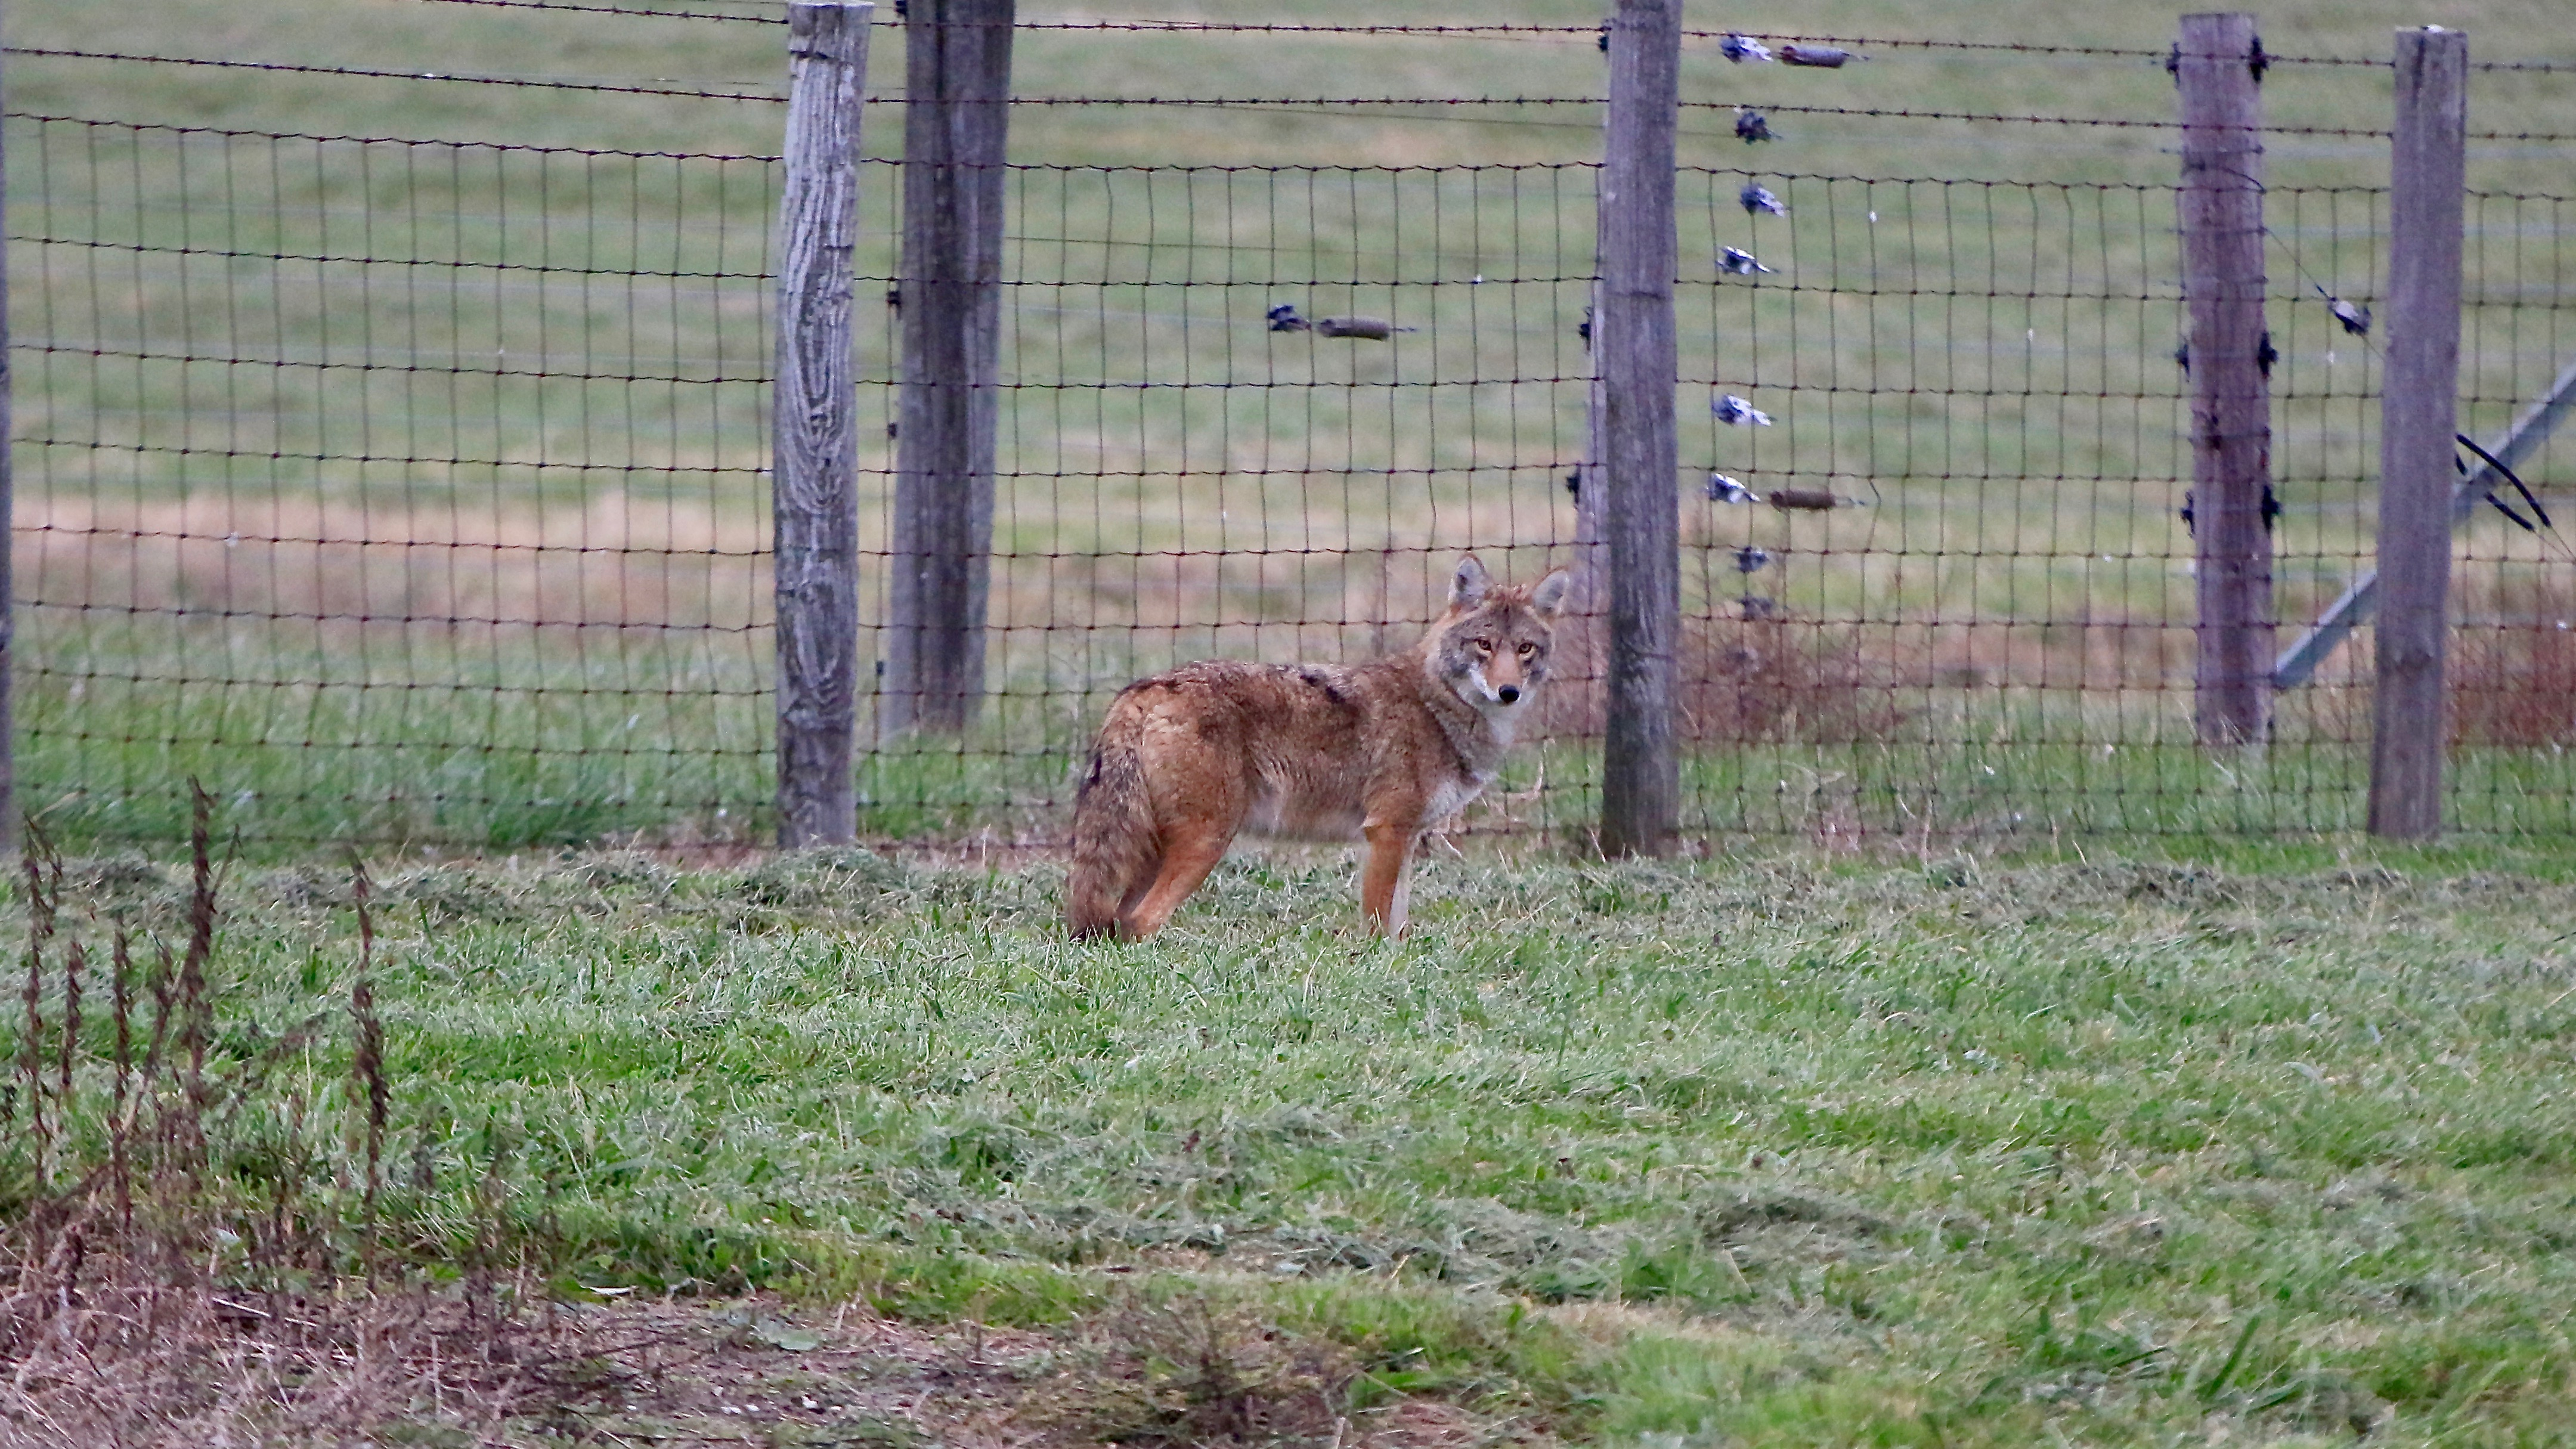 A coyote was spotted in the very early morning along Road D in front of the bison pasture. It then proceeded to sneaking into the pen, surely to stalk geese ... nature, wildlife, animal, mammal, coyote Photo: Adrien Hourlier